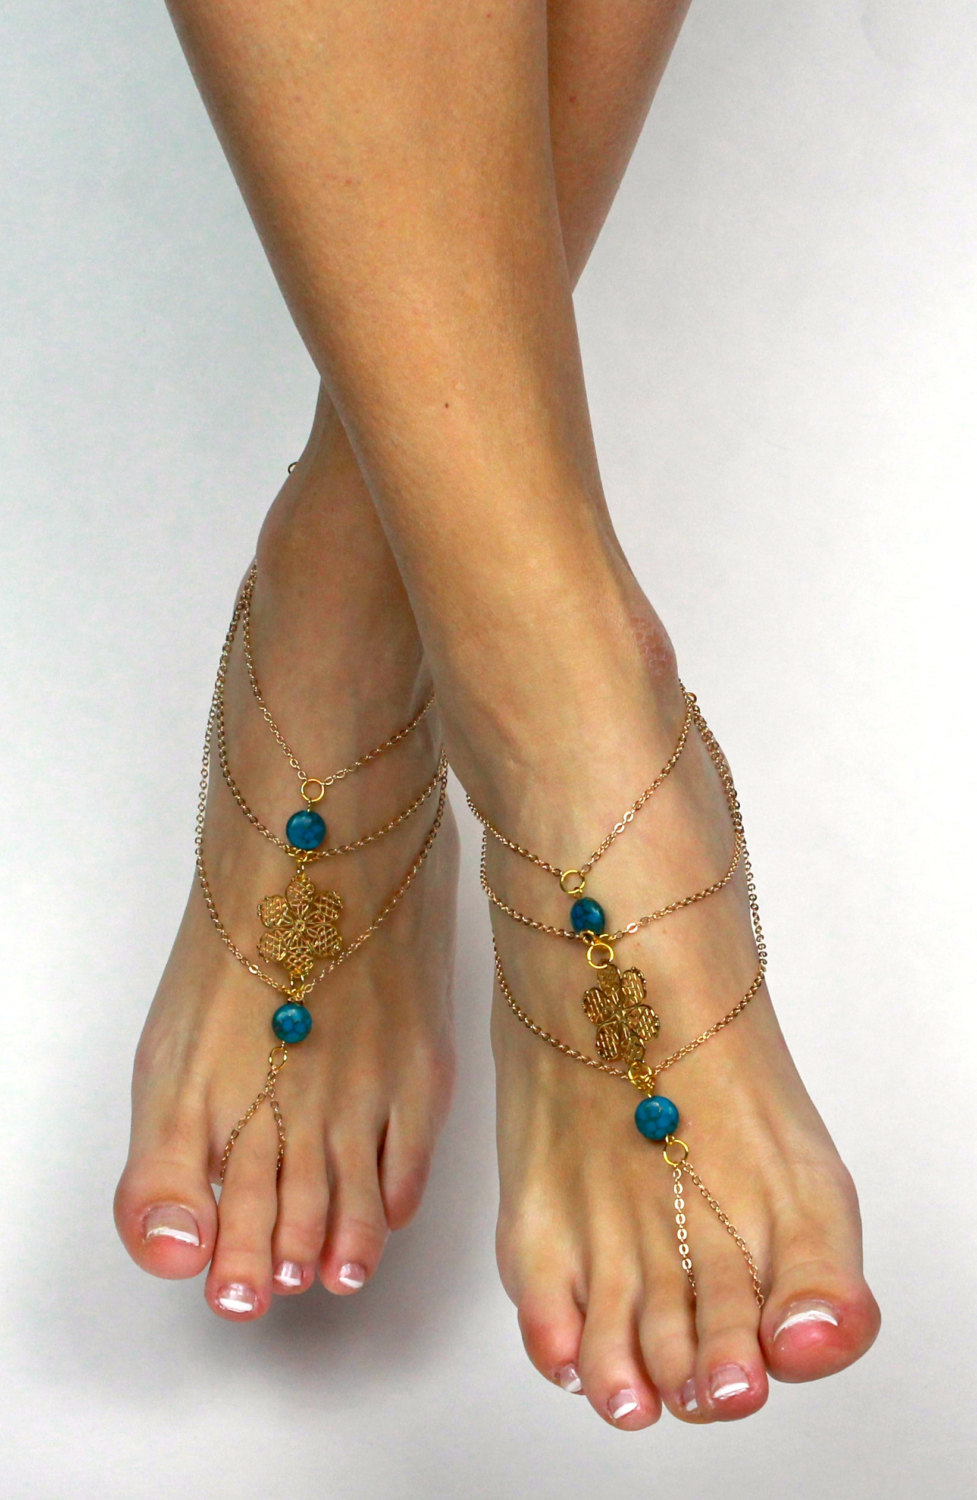 b98468533f01 GYpsy Bohemian Gold Teal Barefoot Sandals Foot Thong Foot Jewelry Bohemian  Sandals Boho Chic Sandals Anklet